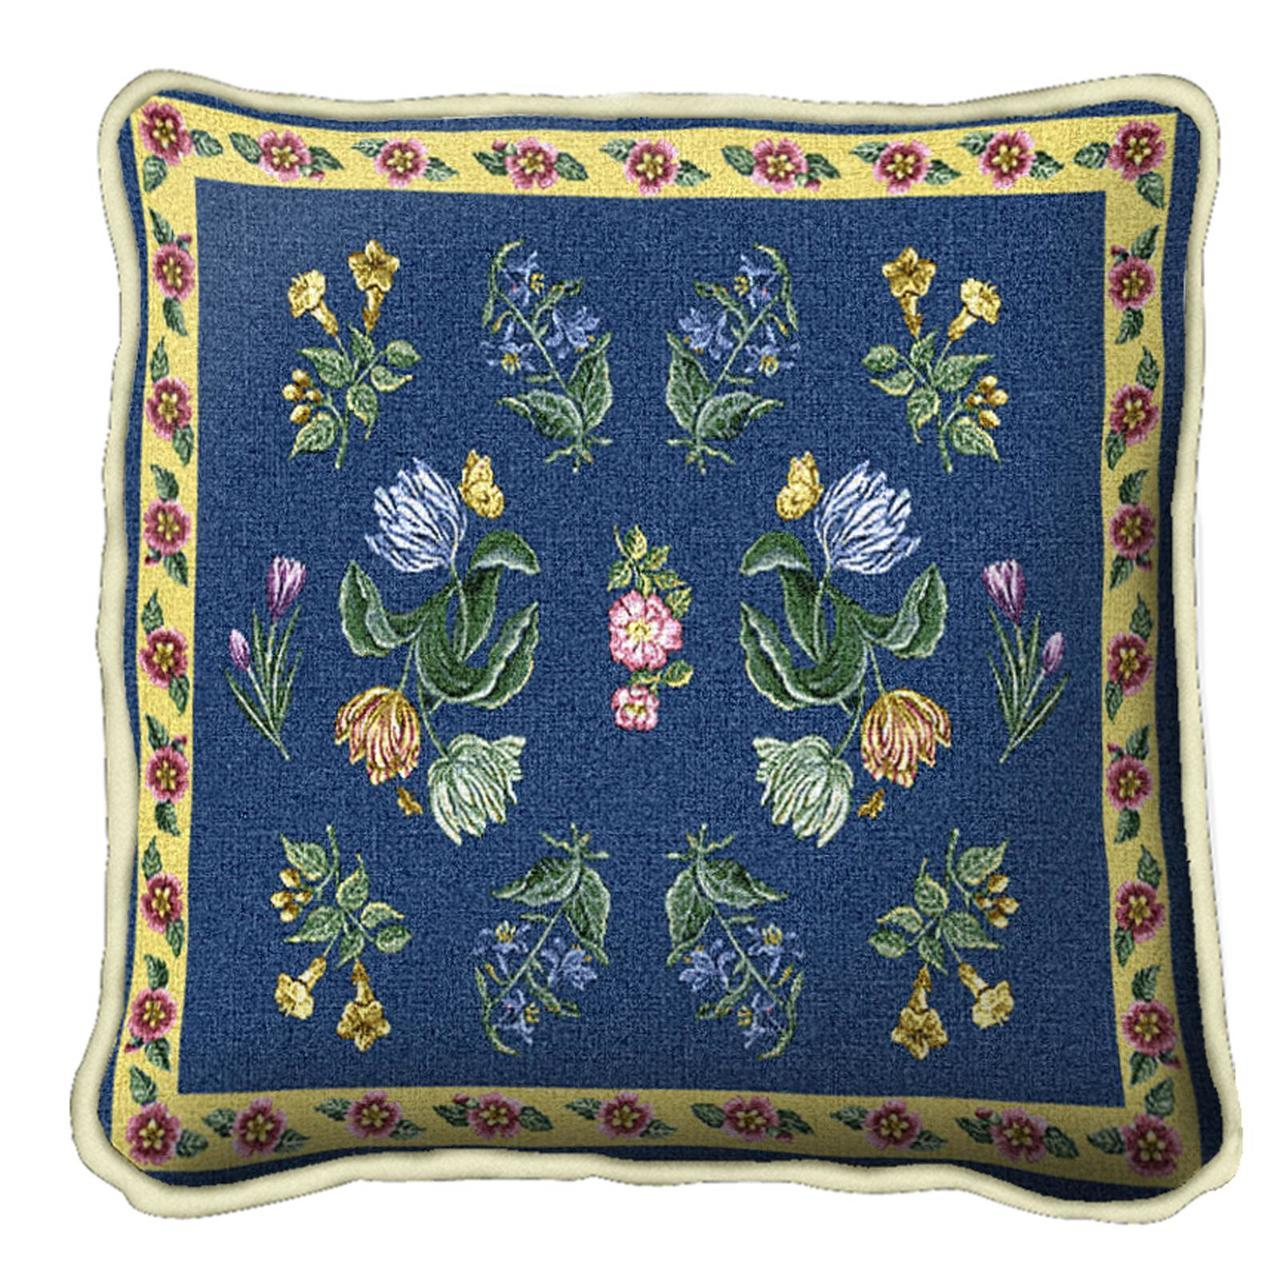 Throw Pillow-17 x 17-The Cozy Home-Greysons-Floral